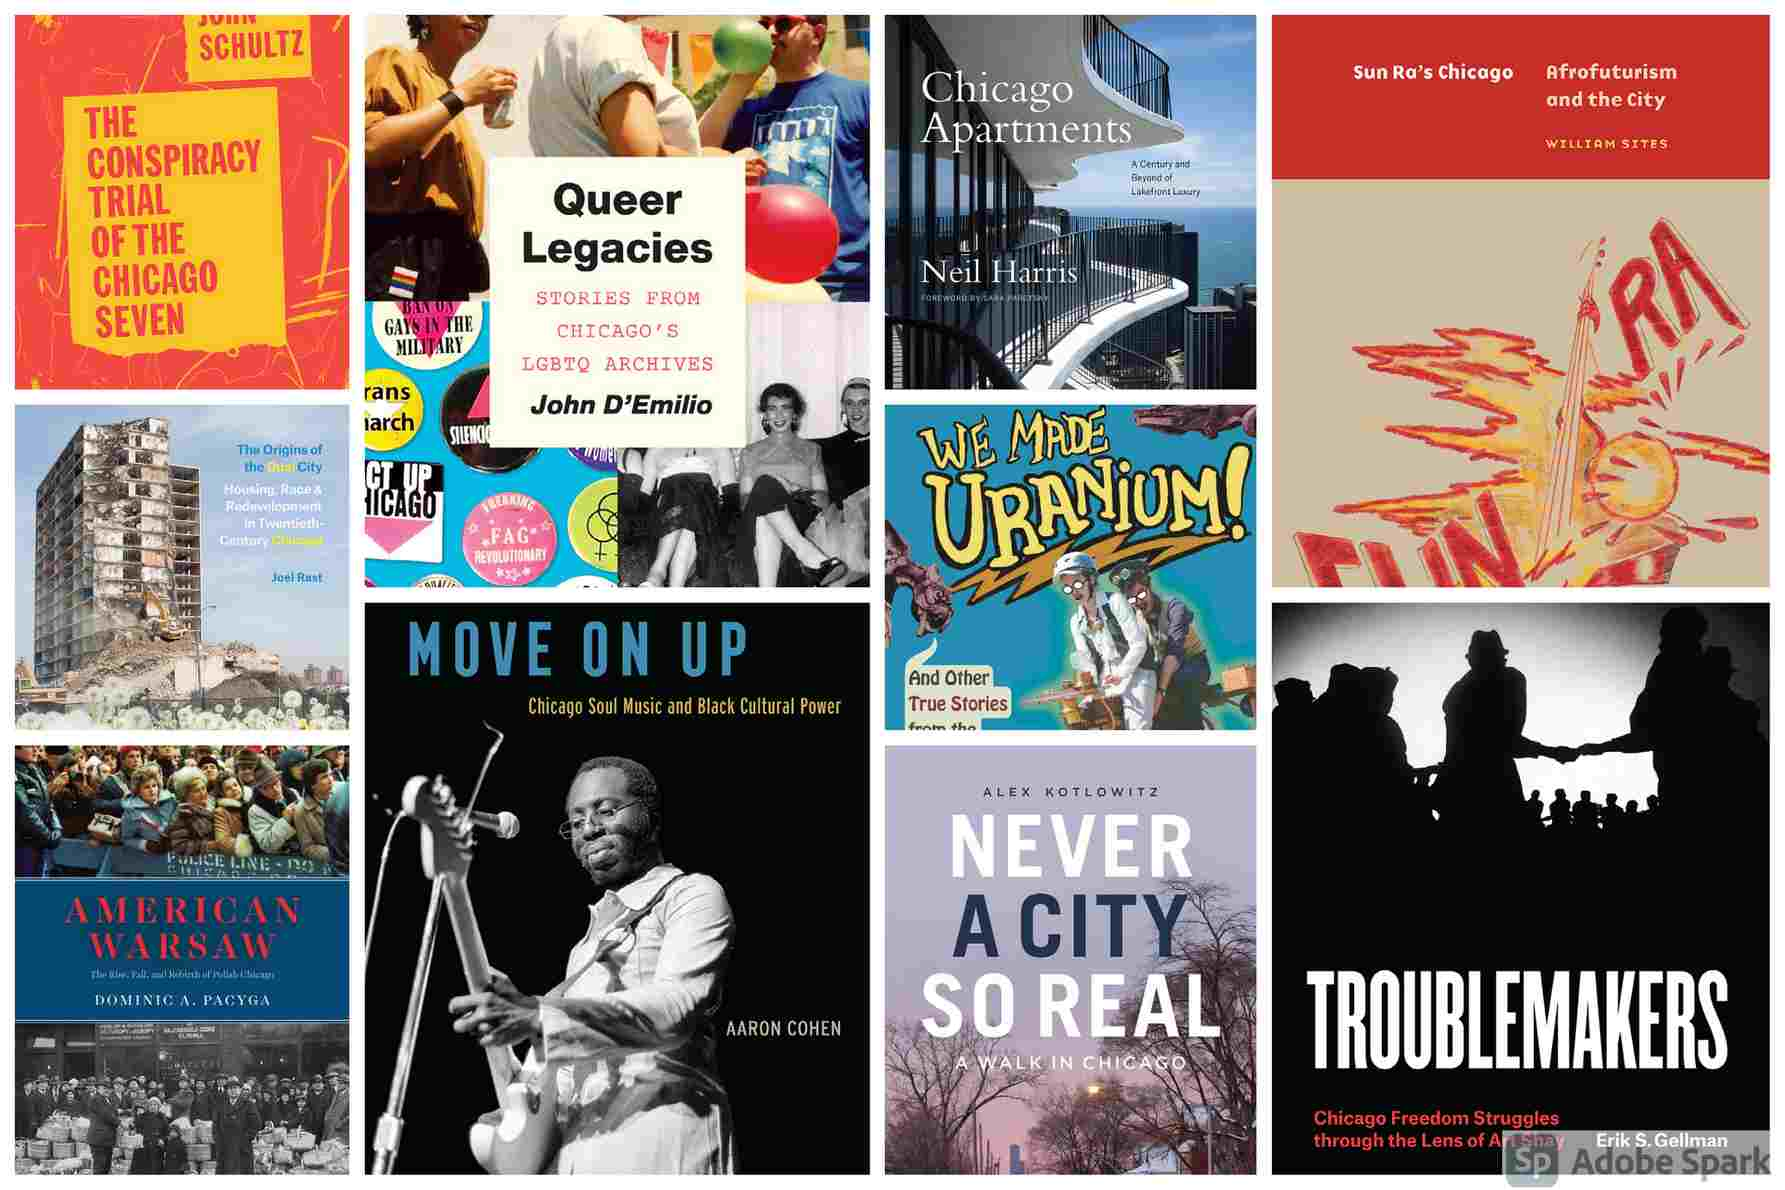 A History of Chicago in 10 Books